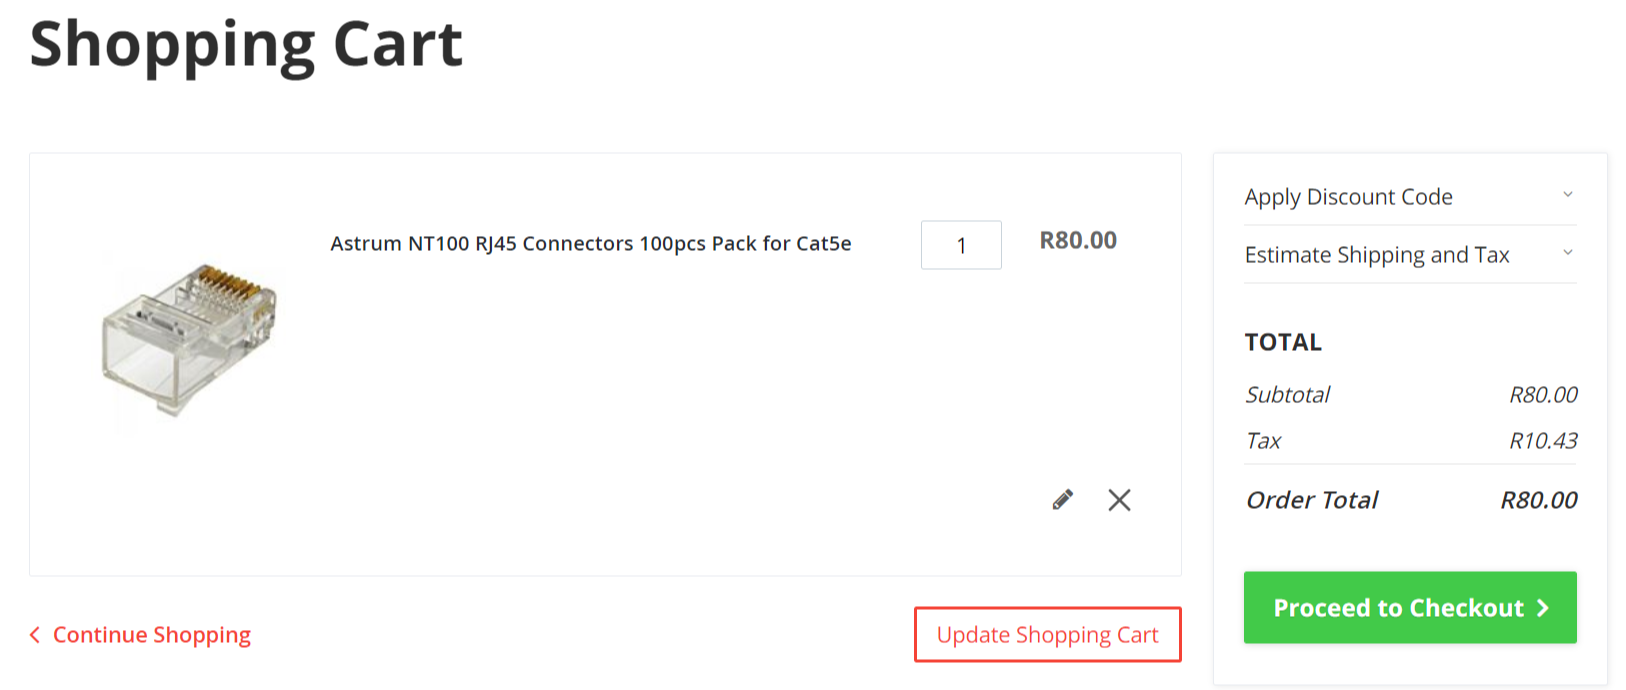 Shopping-Cart-Page